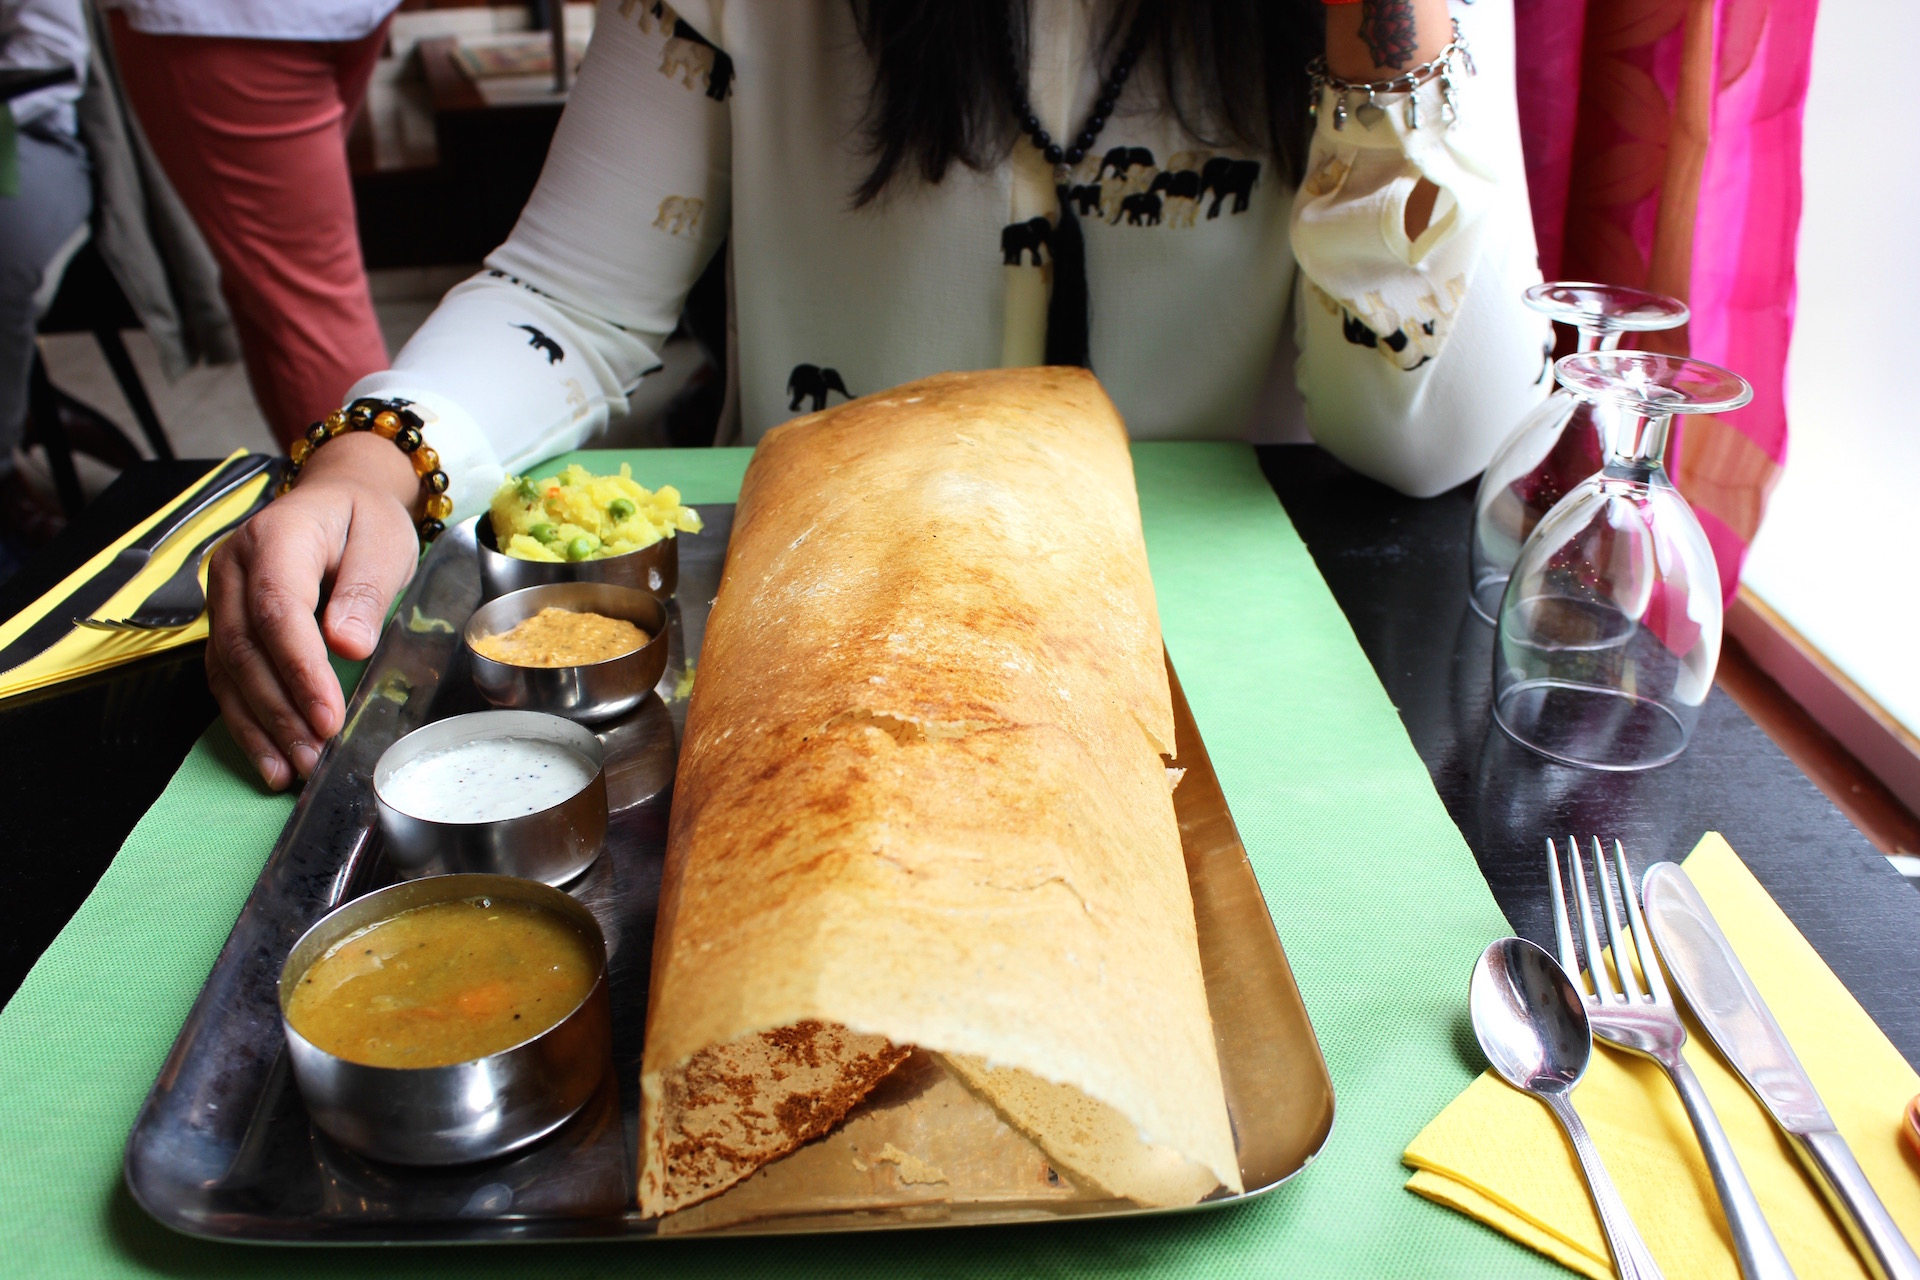 Look at the size of this dosa - it's huge